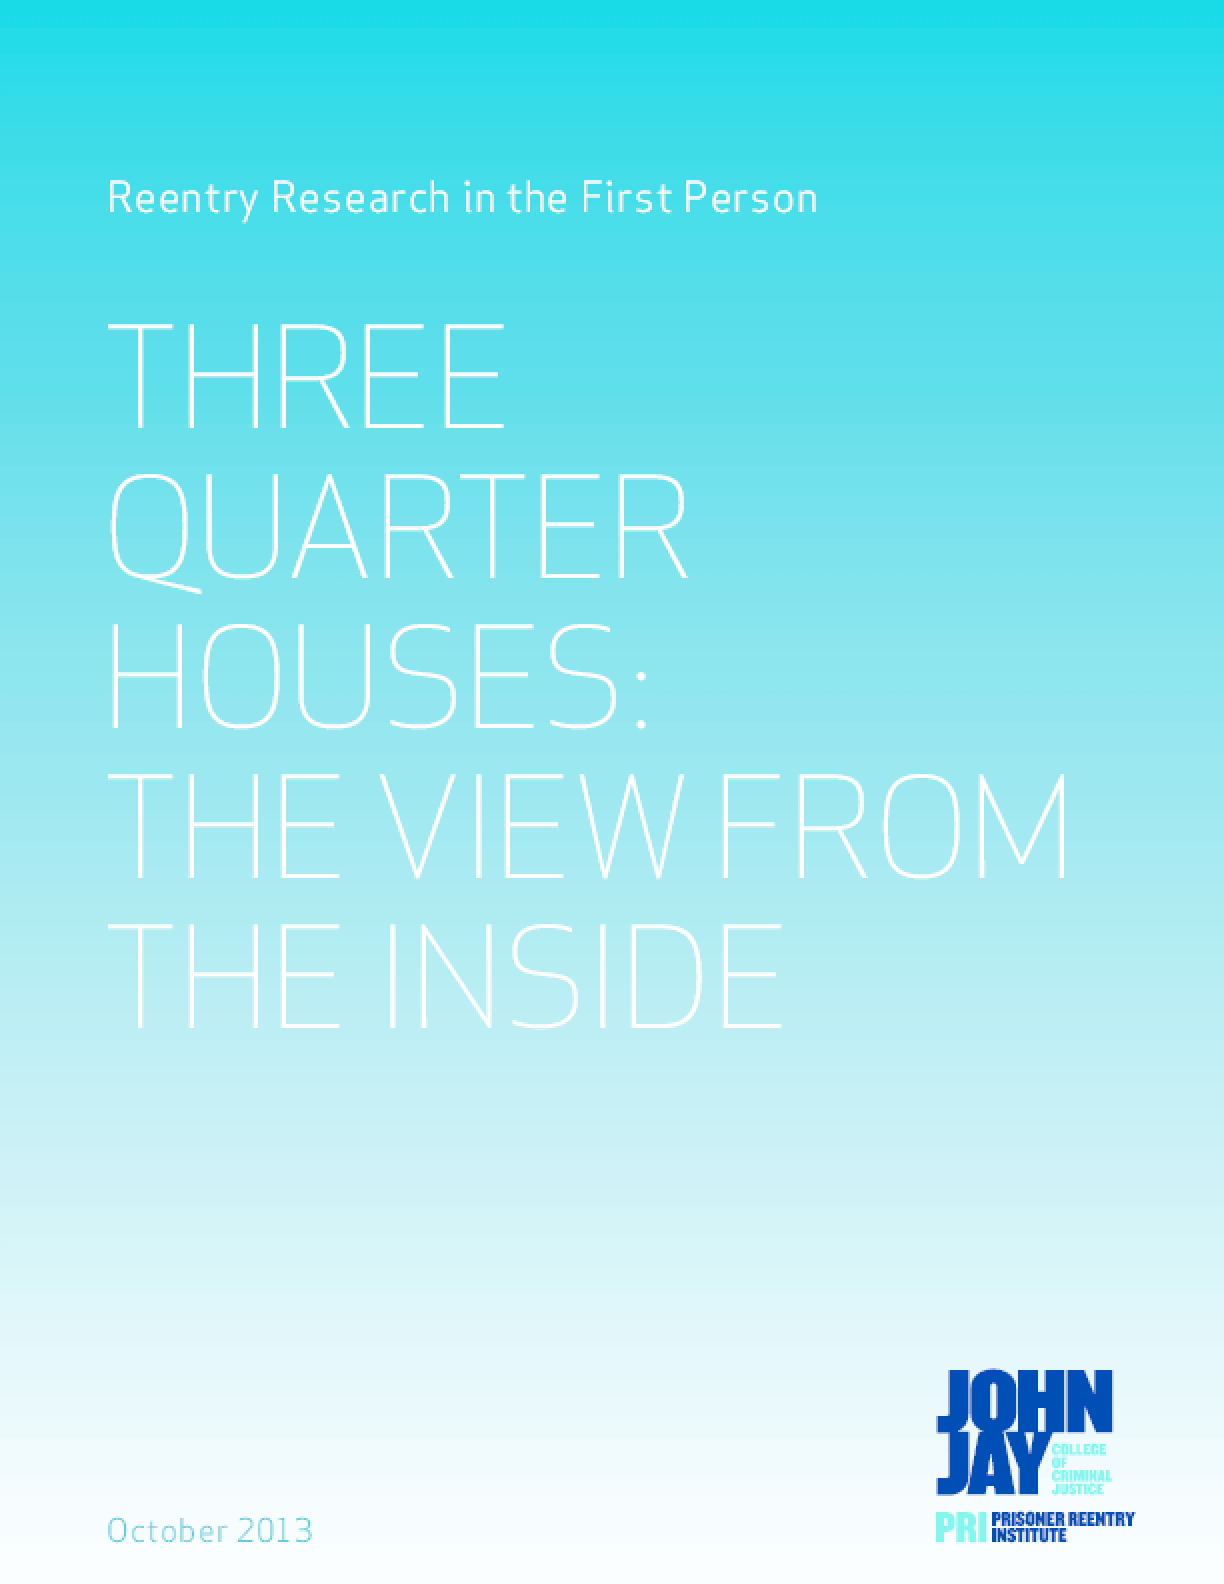 Three Quarter Houses: The View from the Inside